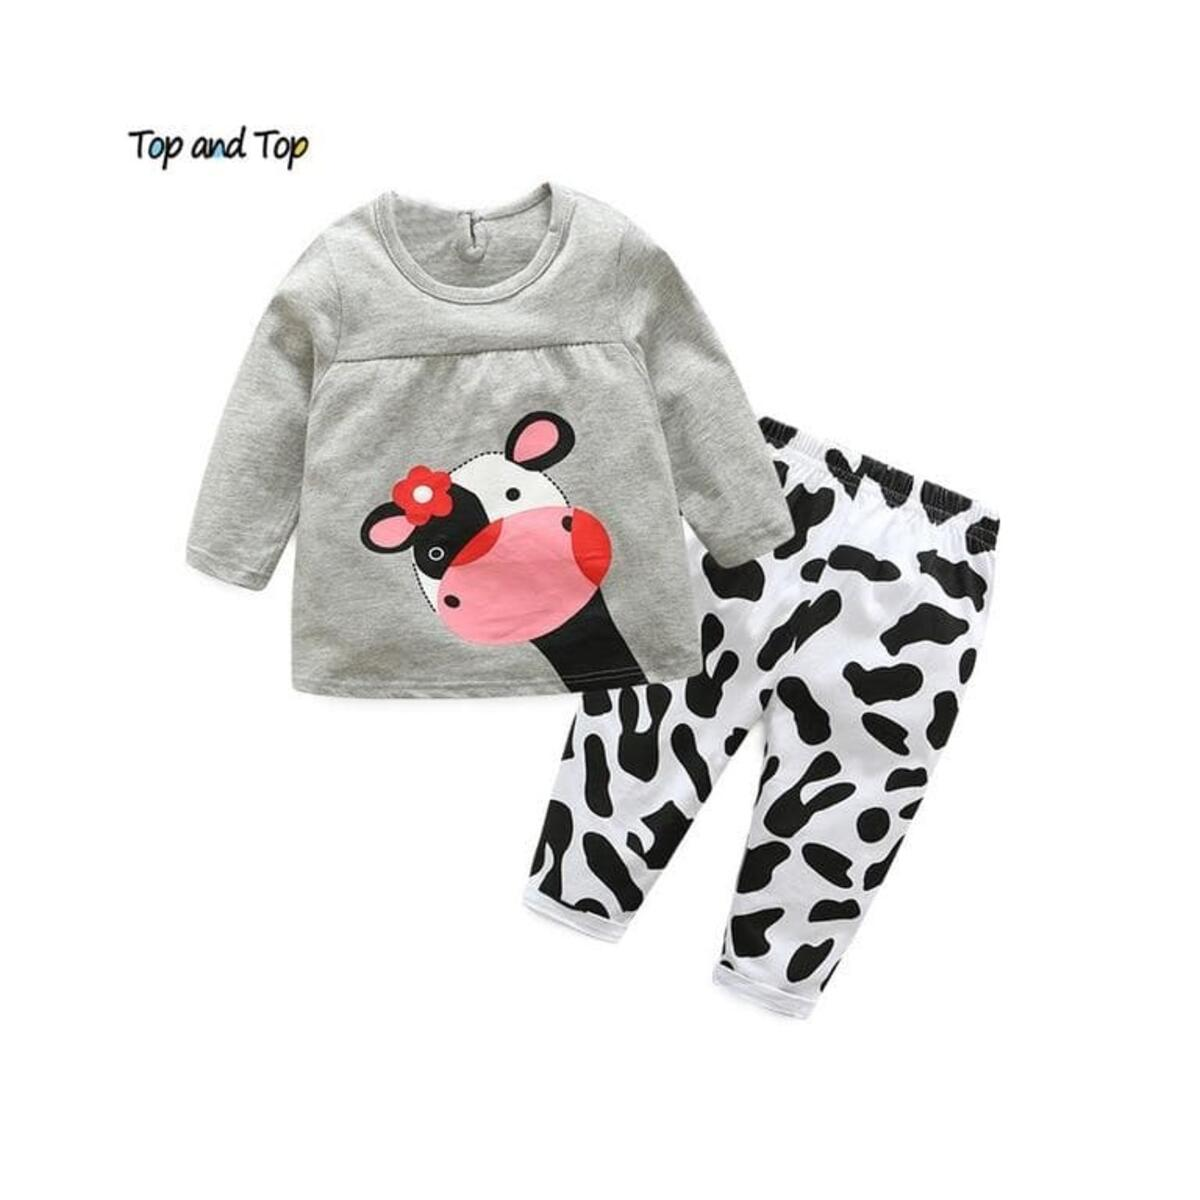 Newborn Kids Baby Girl Clothes Hooded Sweatshirt Tops Floral Pants Outfits Set with Headband